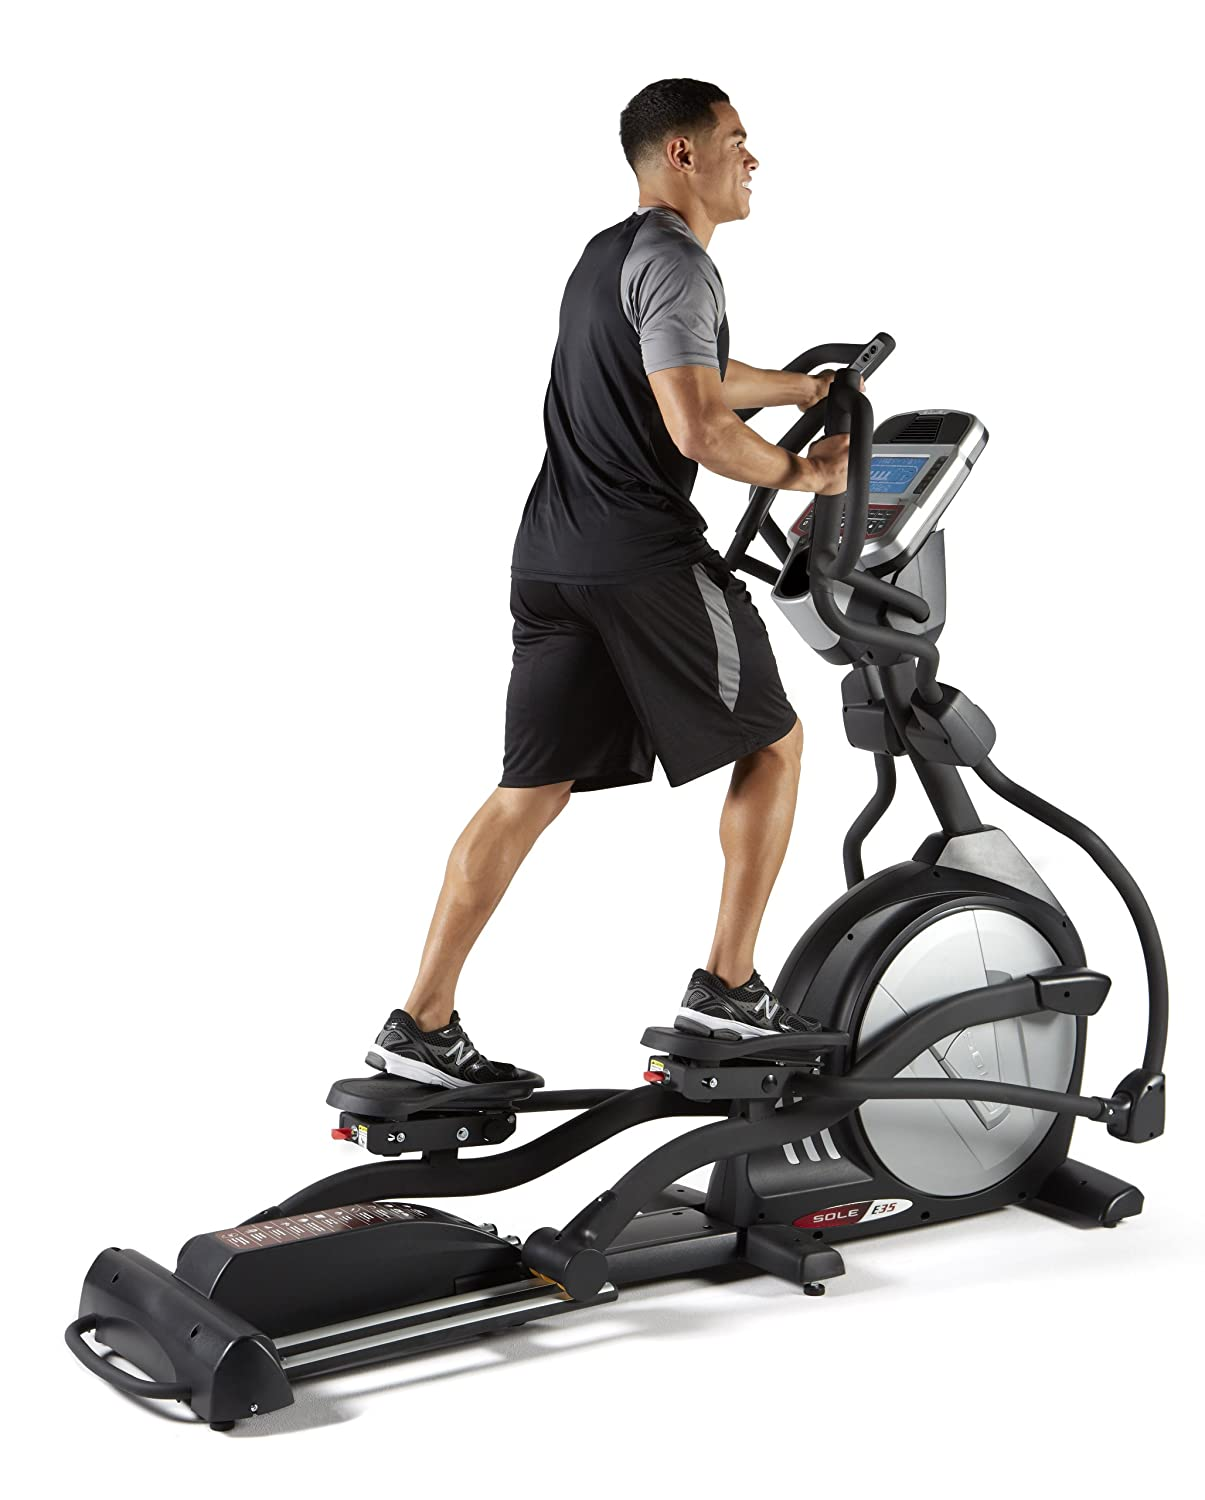 Top Exercise Equipment: Top 10 Best Fitness Elliptical Cross Trainer Machines 2016